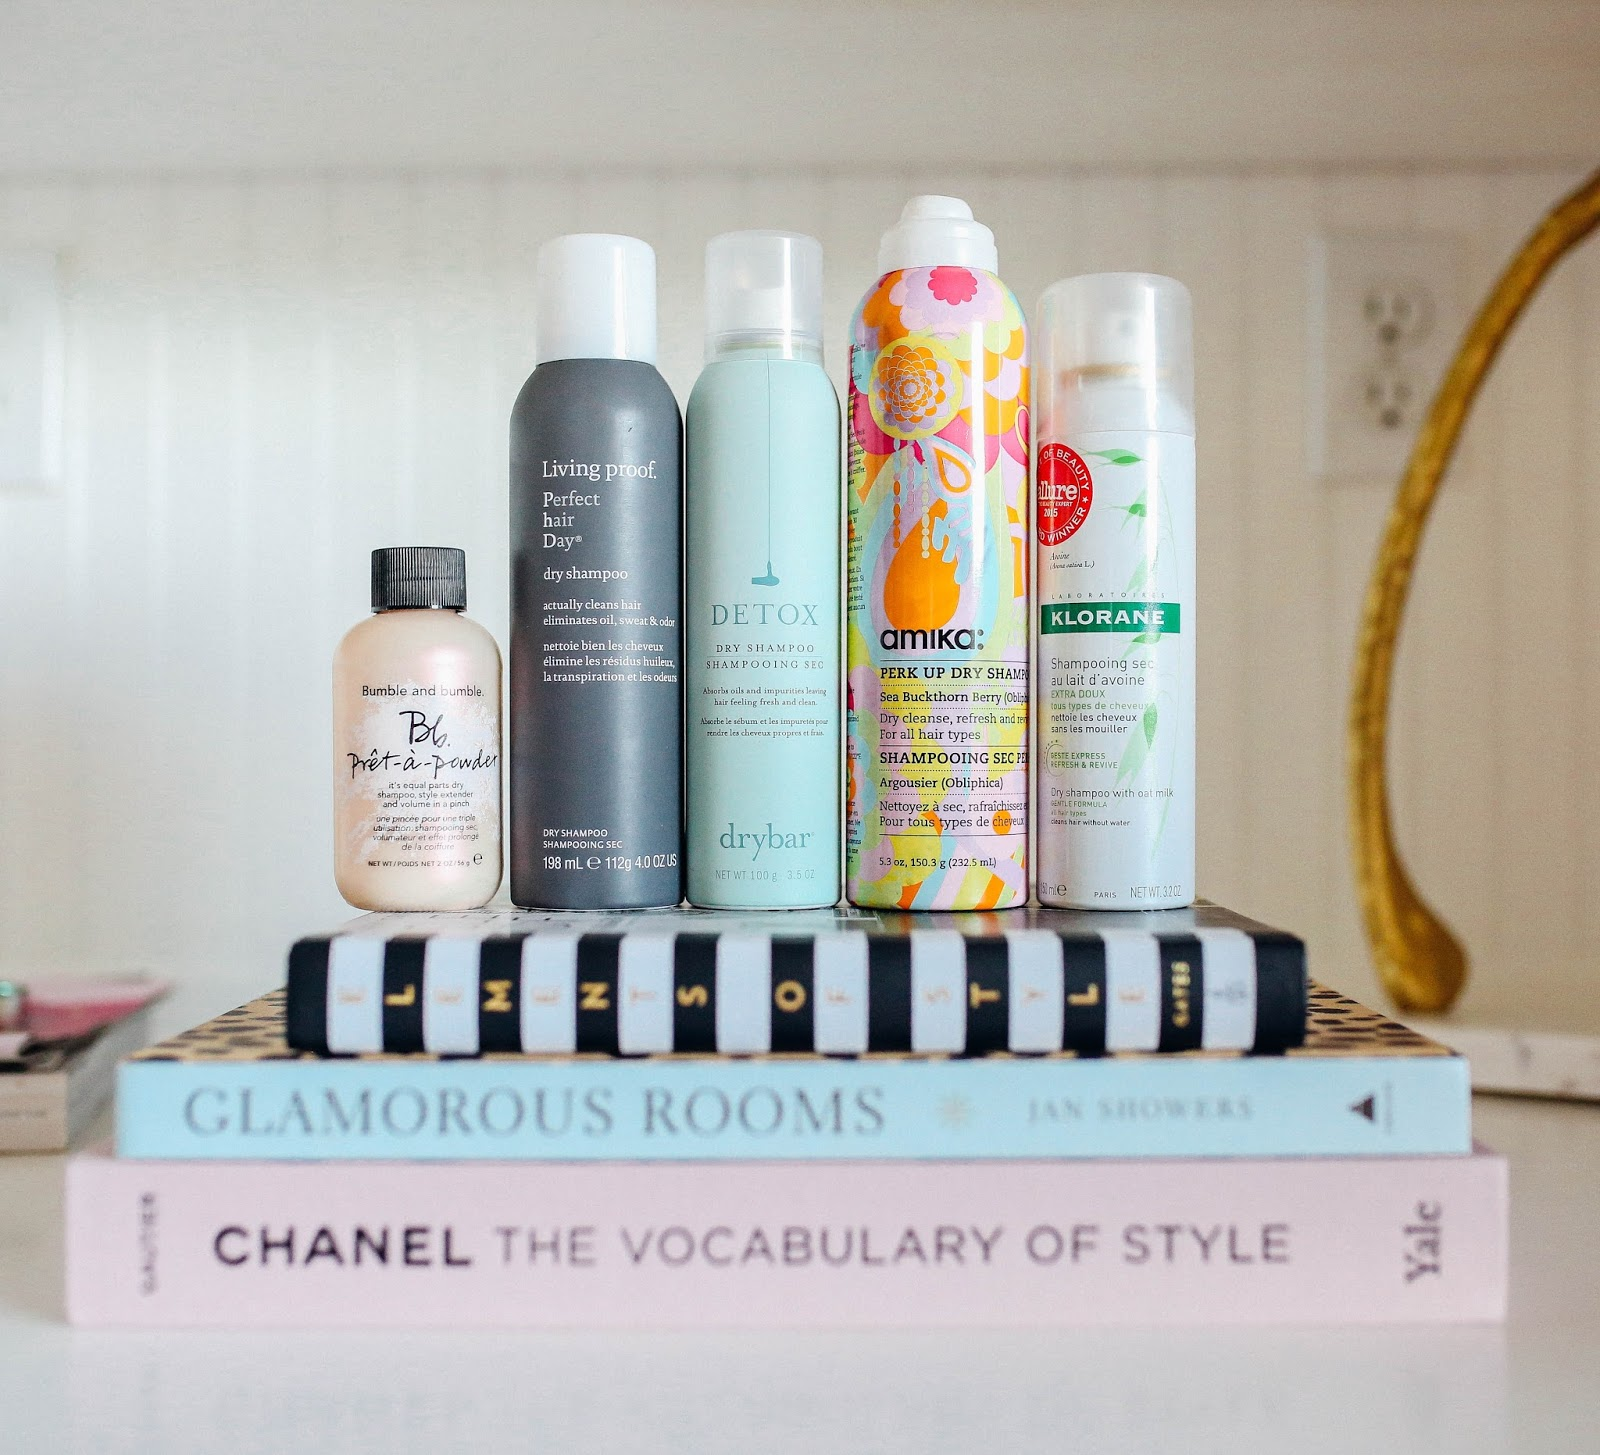 the sweetest thing blog, emily gemma, dry shampoo best and worse, best dry shampoo, living proof dry shampoo, dry shampoo comparison-2